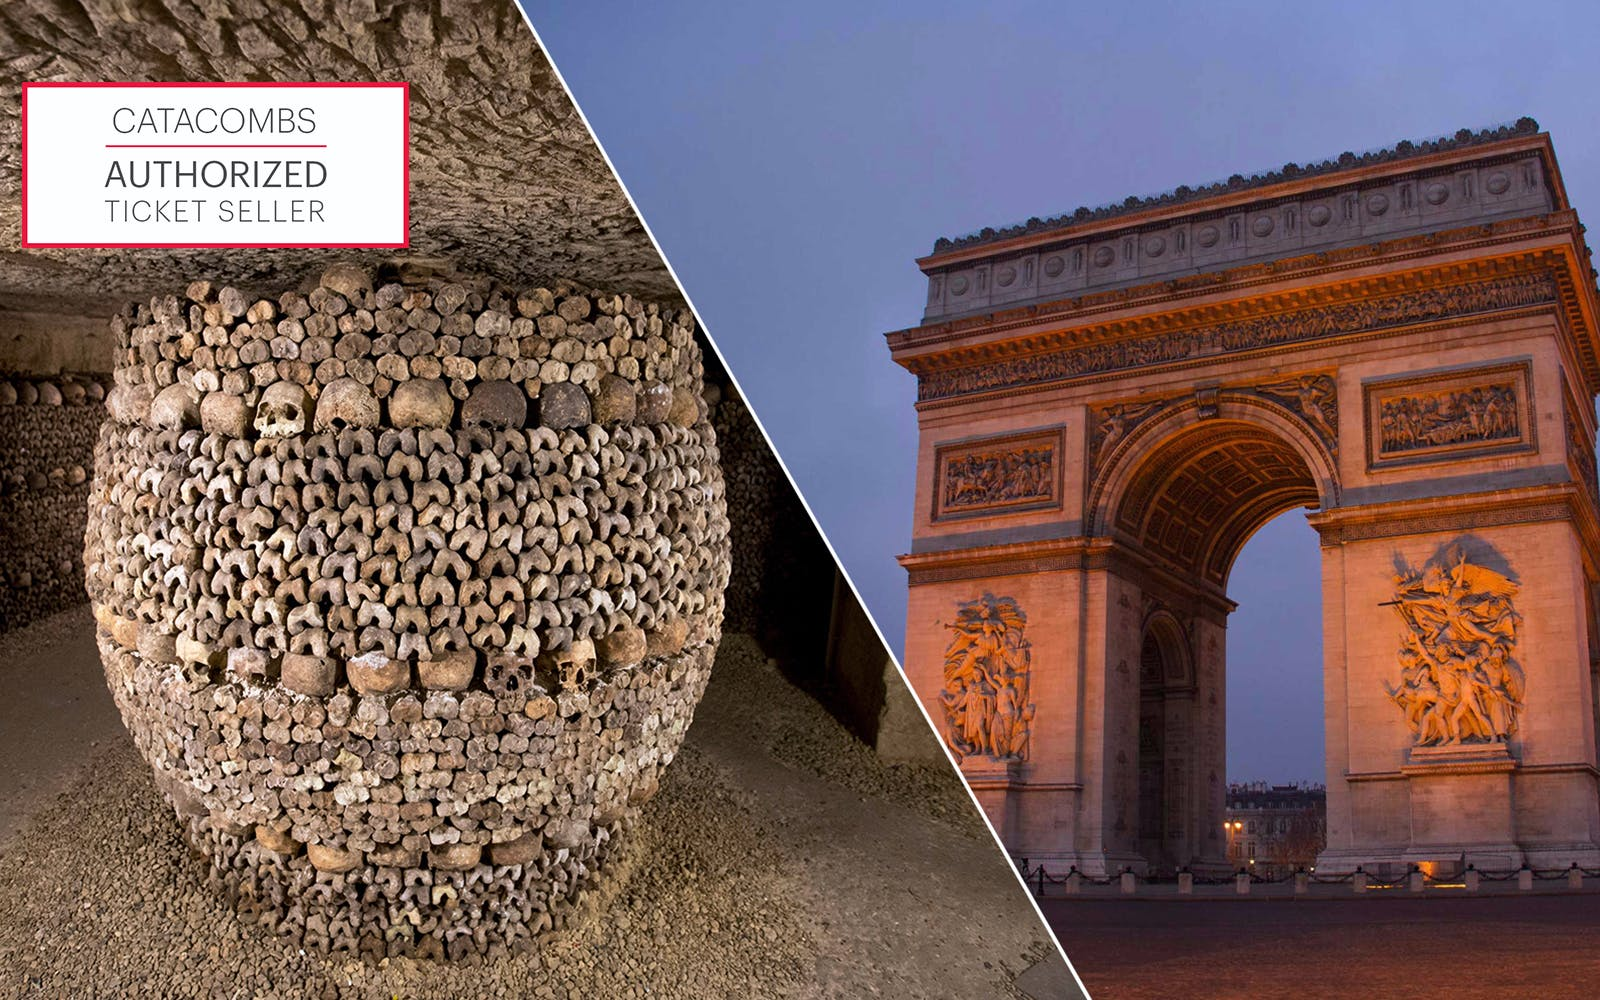 Skip the Line: Catacombs & Arc de Triomphe Rooftop Access Combo